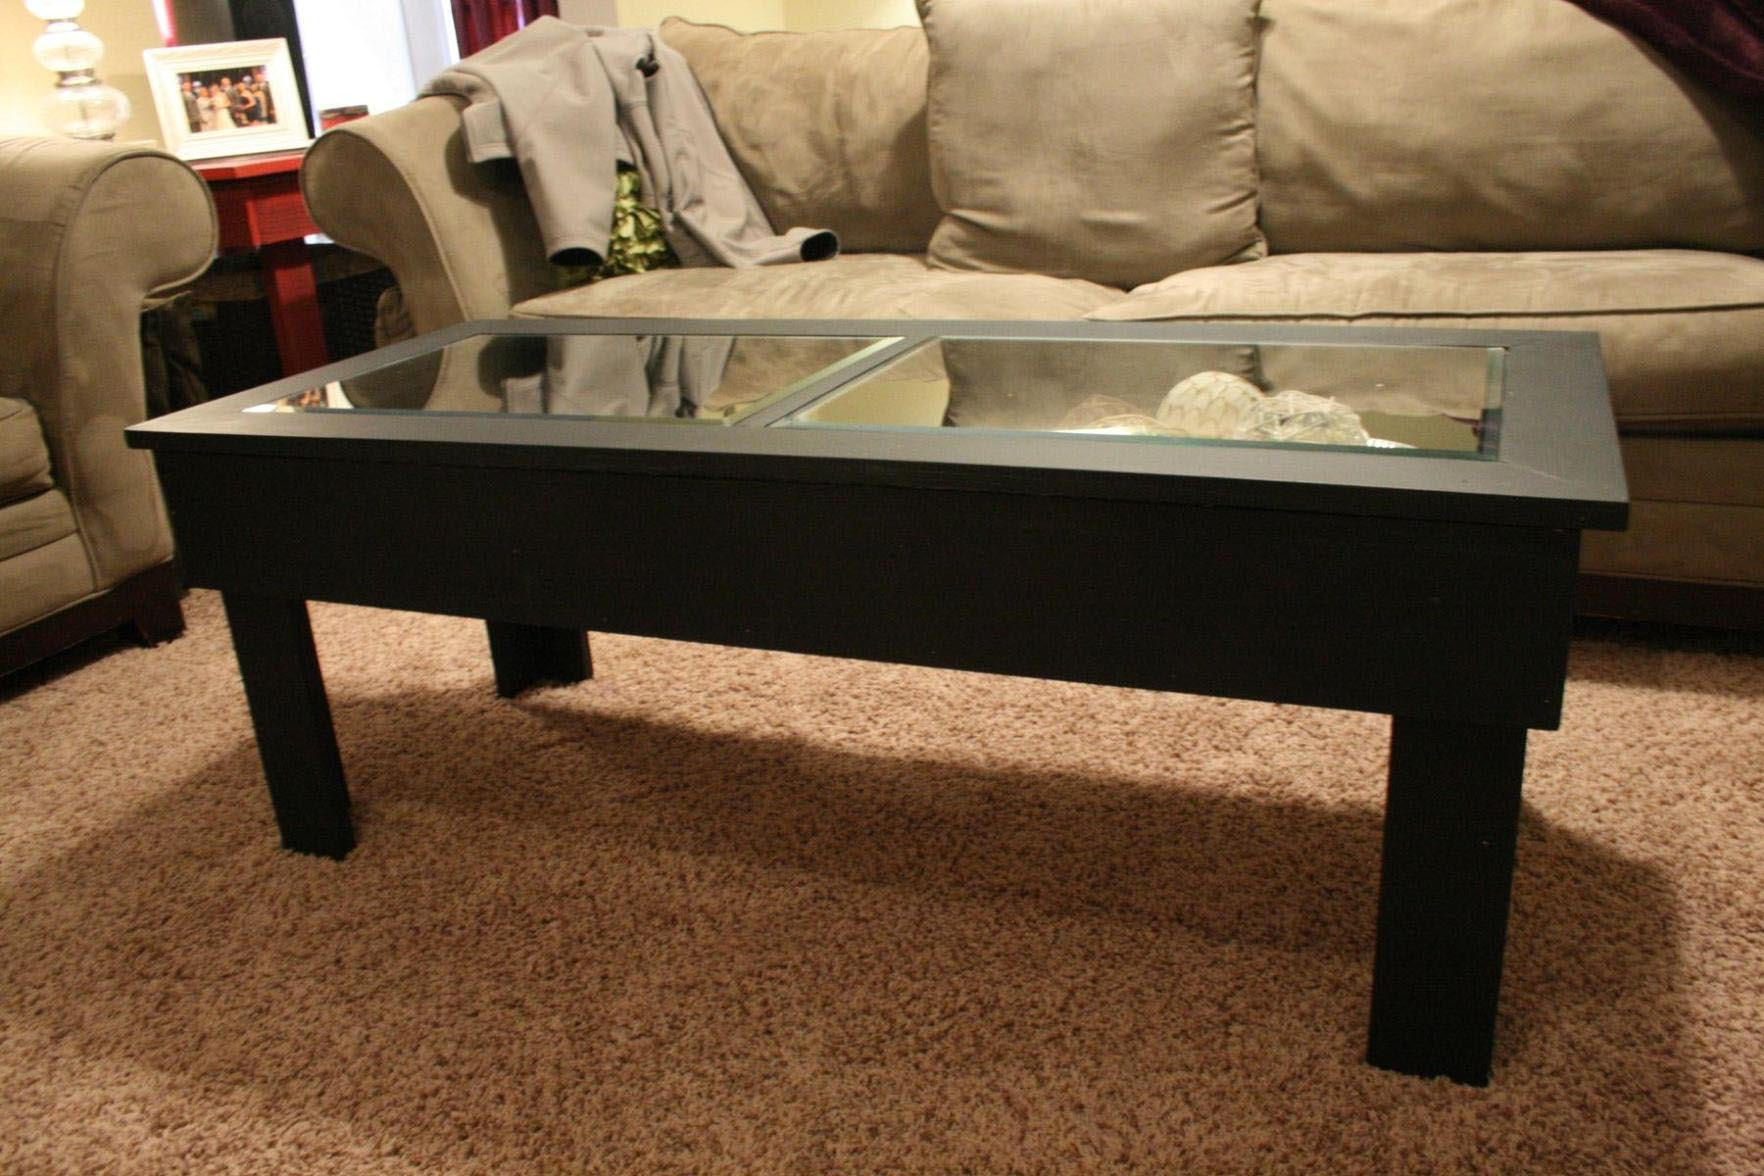 Glass top display coffee table coffee table design ideas glass top display coffee table geotapseo Images